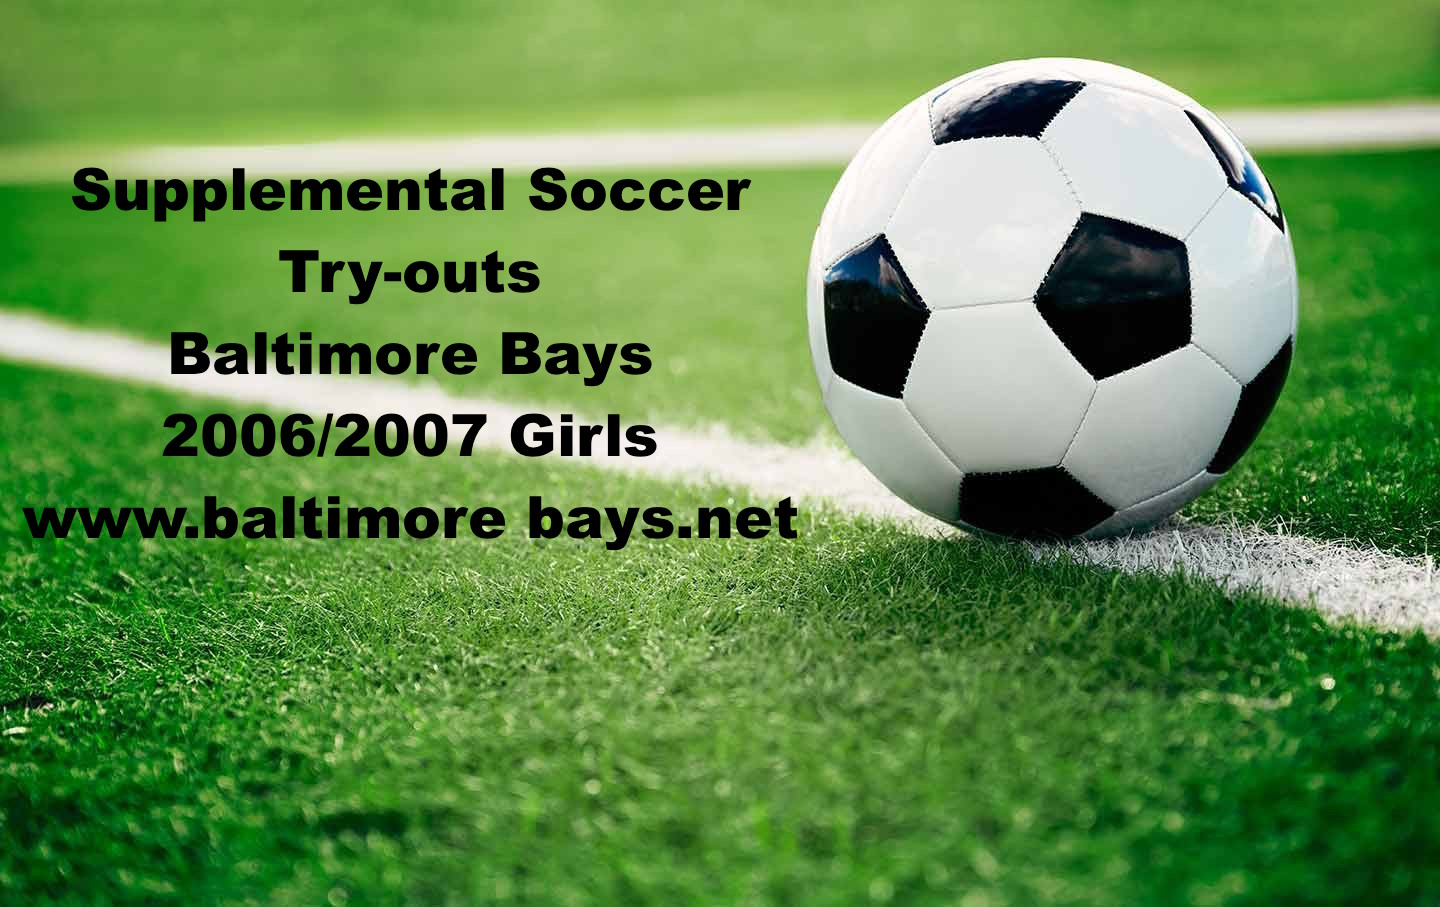 Supplemental Tryouts Bays 2006/2007 Girls